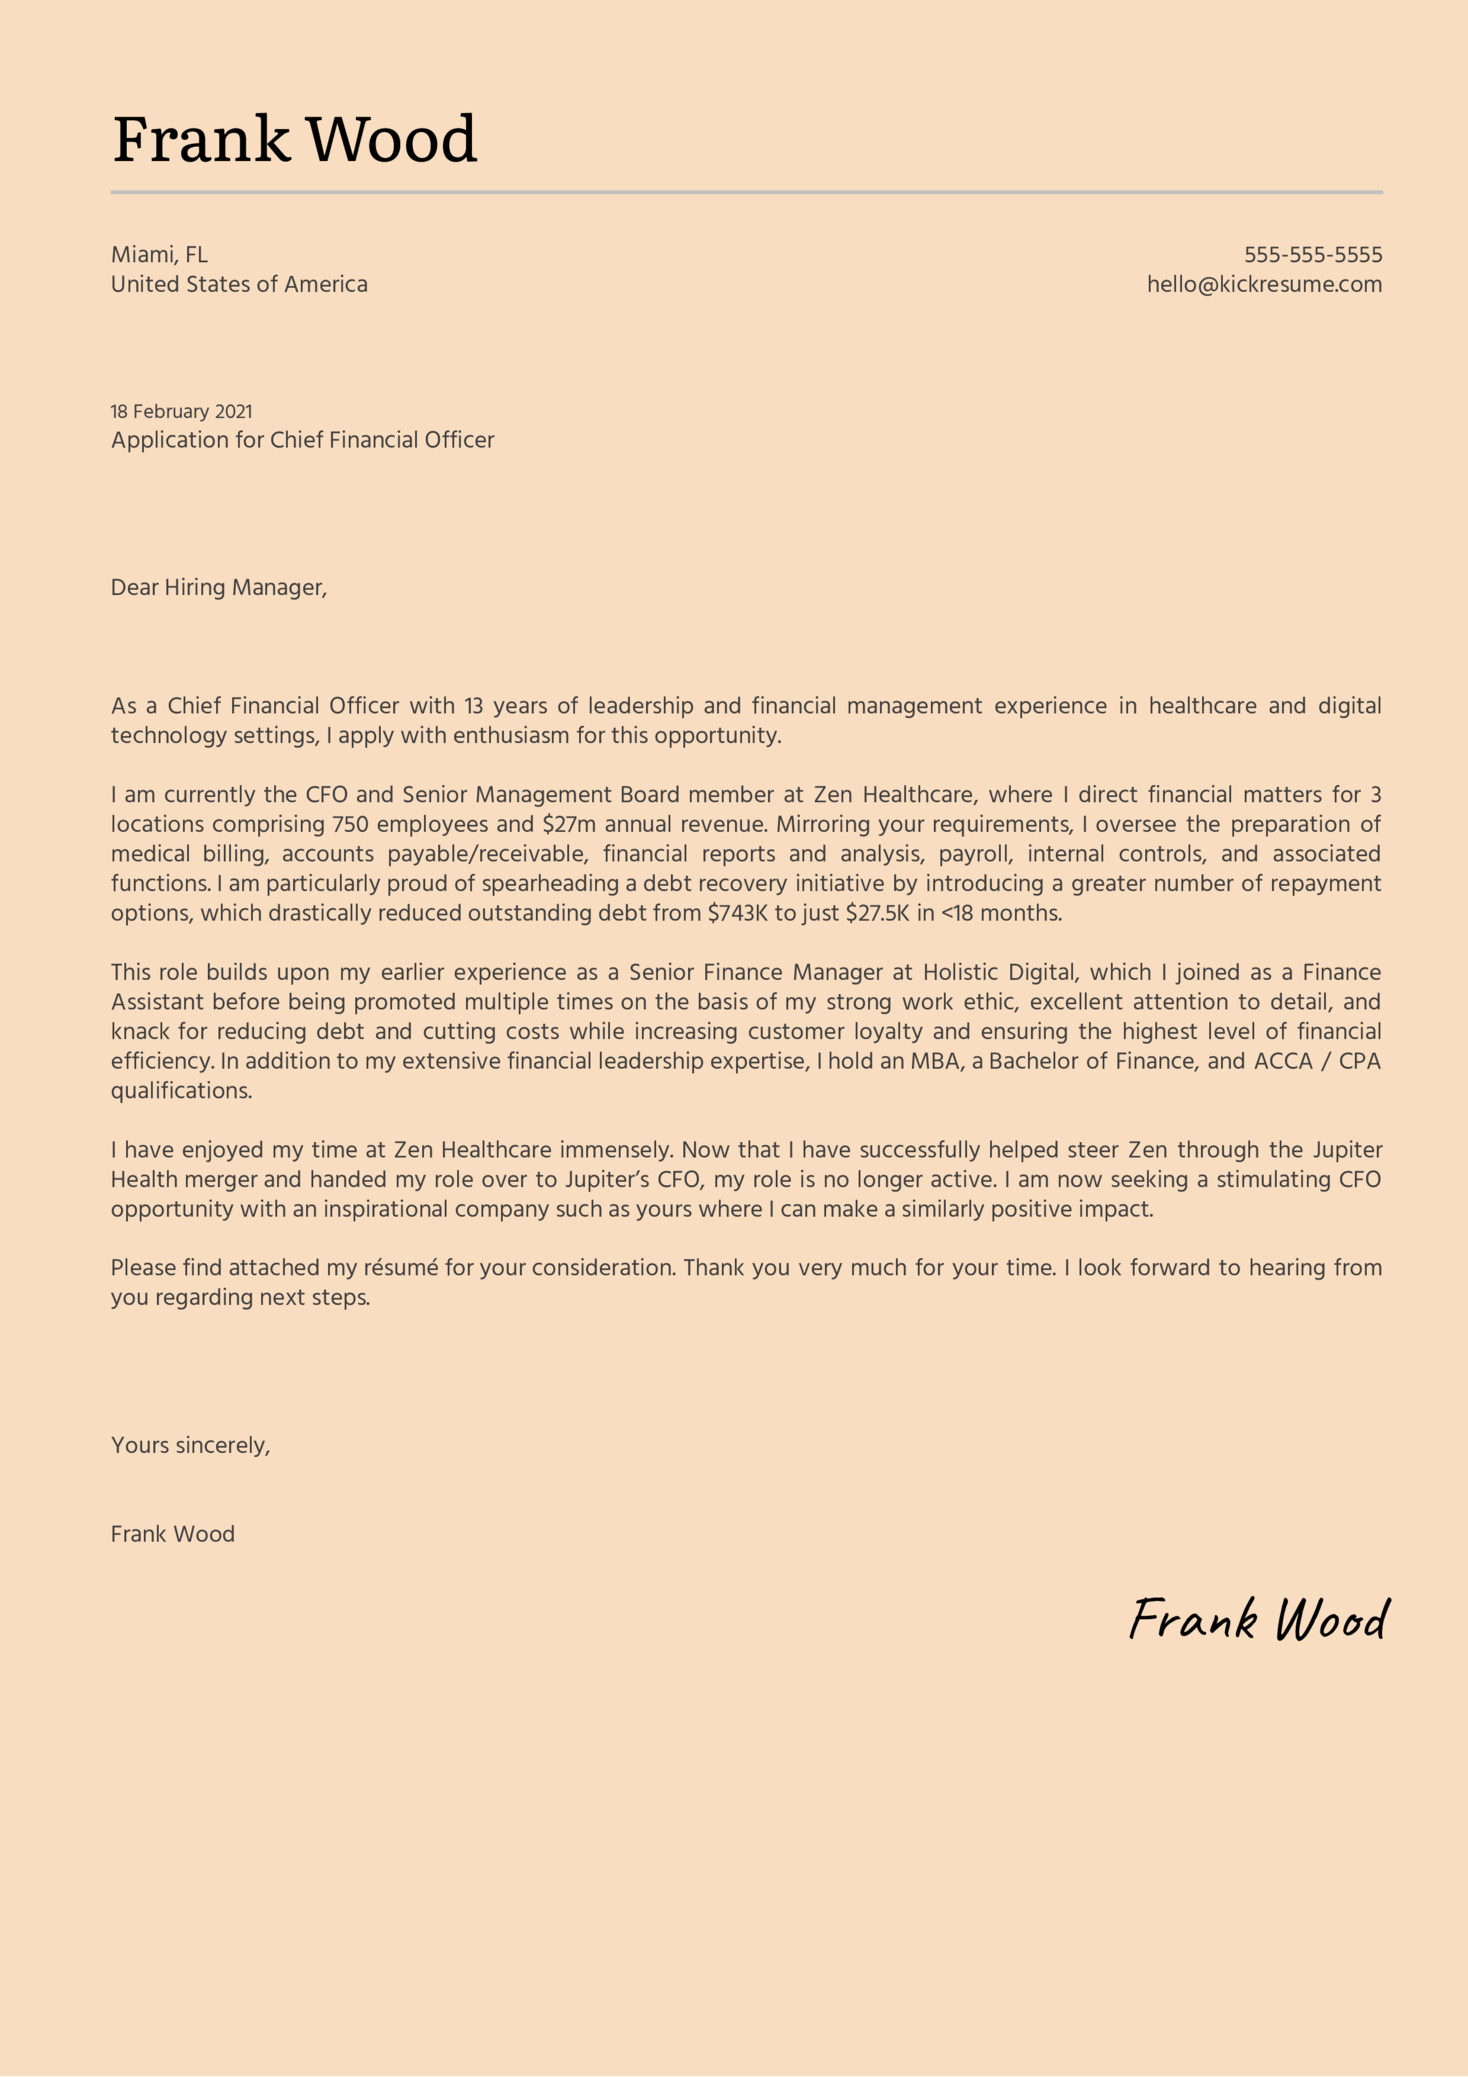 Chief Financial Officer Cover Letter Sample